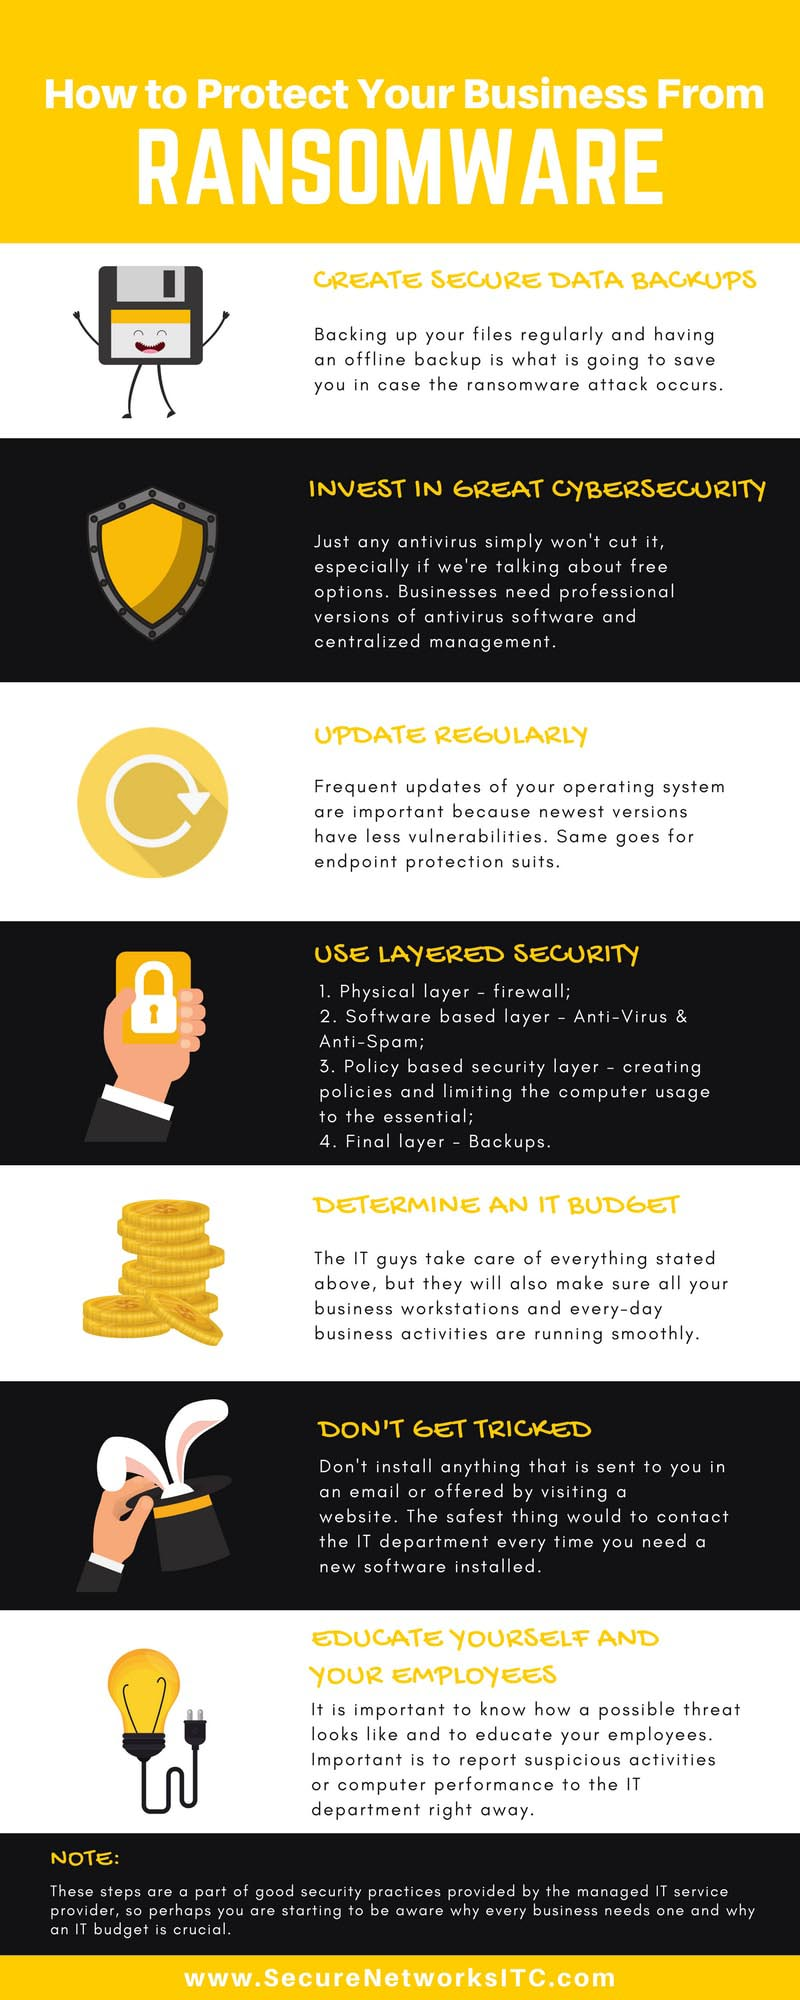 How to protect Your Business from Ransomware - Infographic